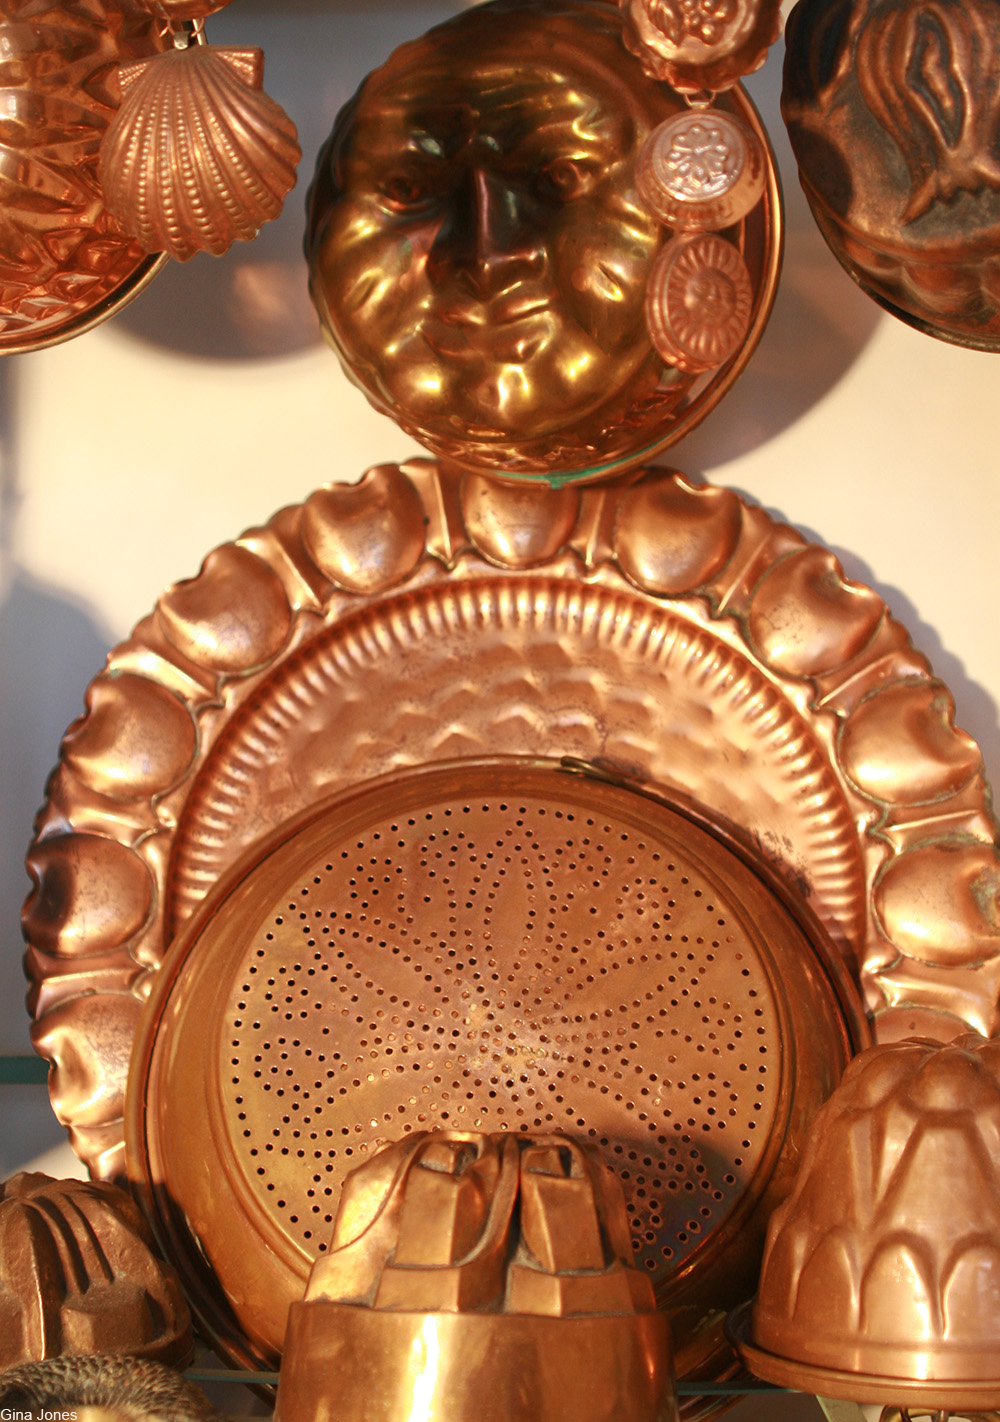 a display of copper molds